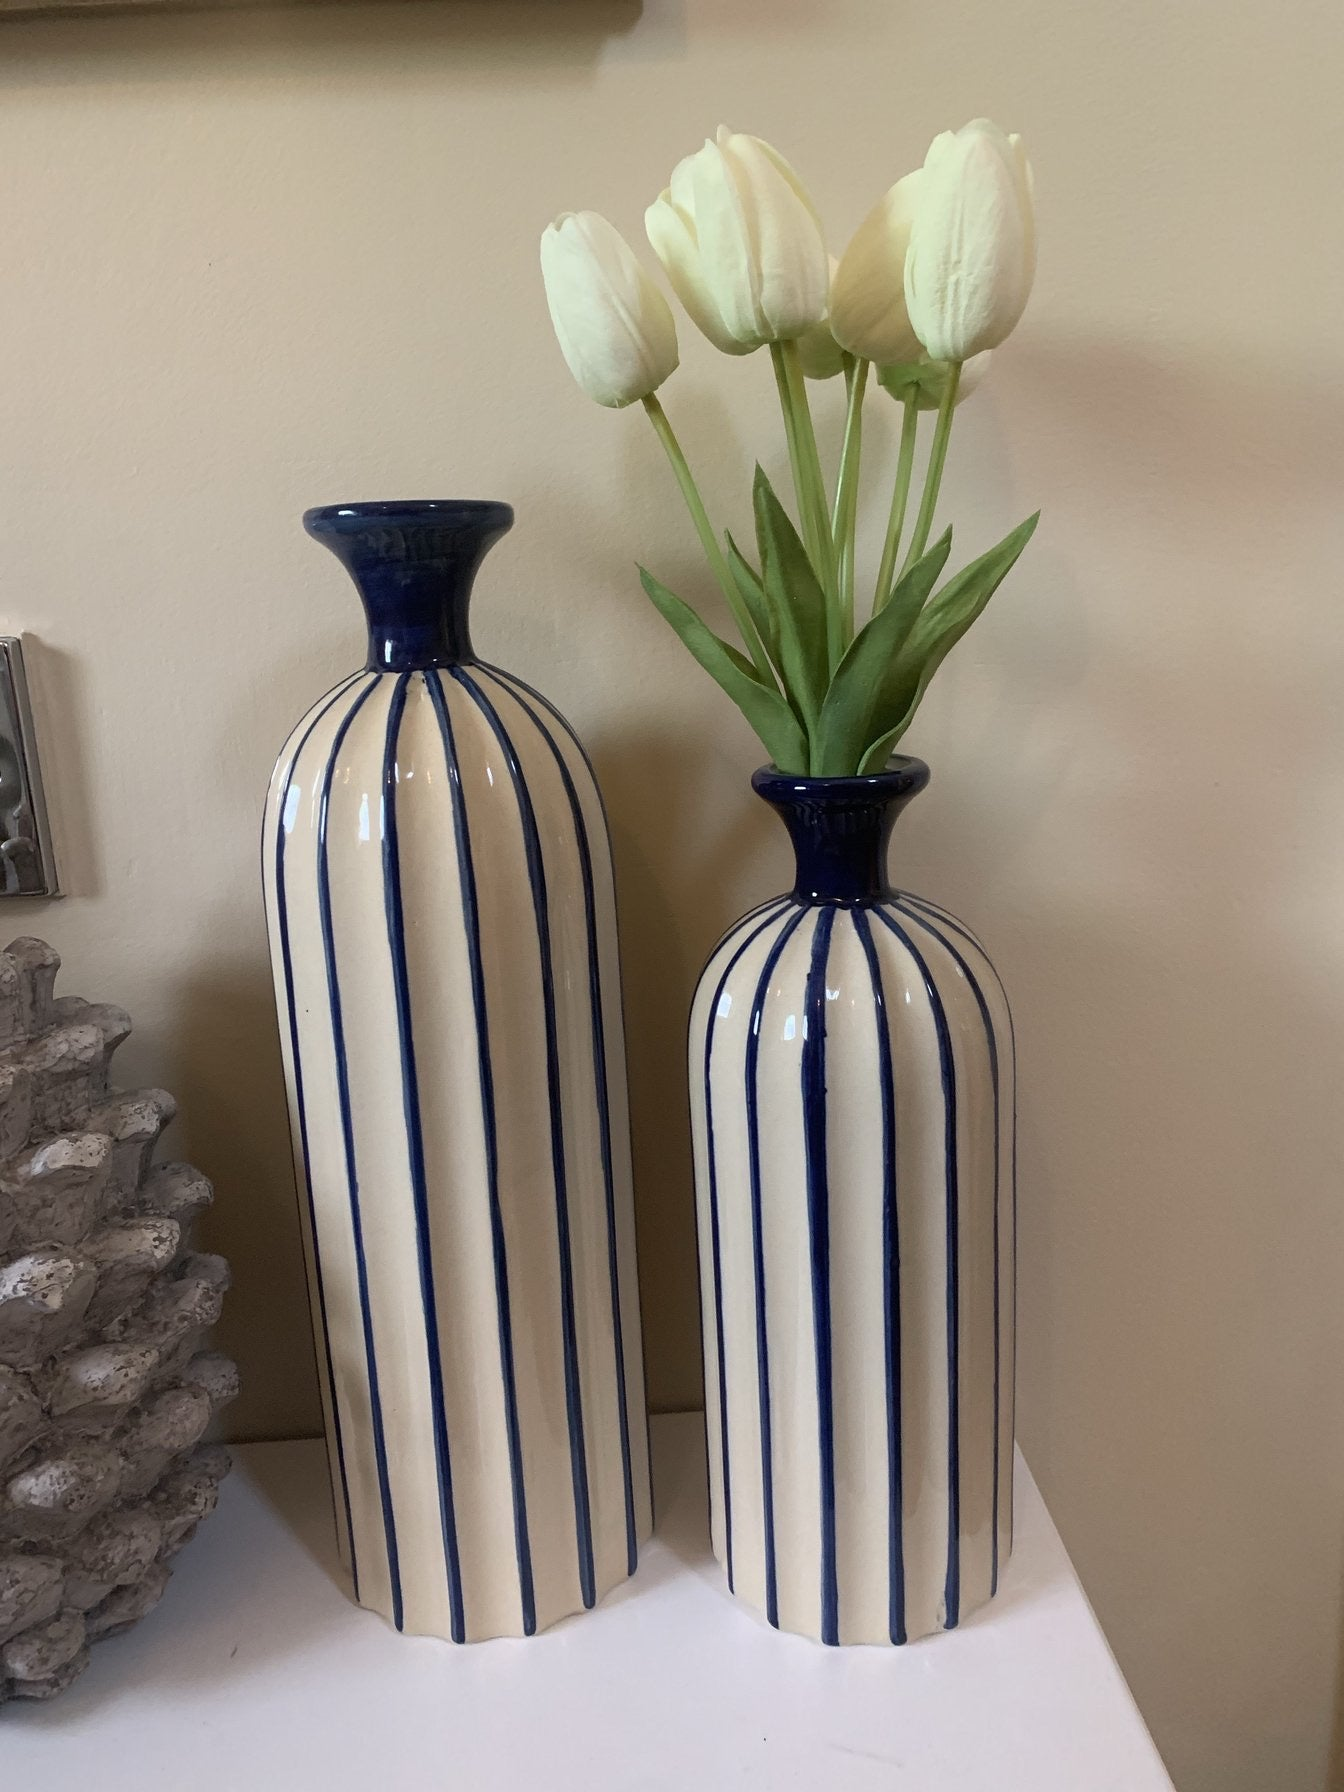 Blue and Cream Vases - 2 sizes